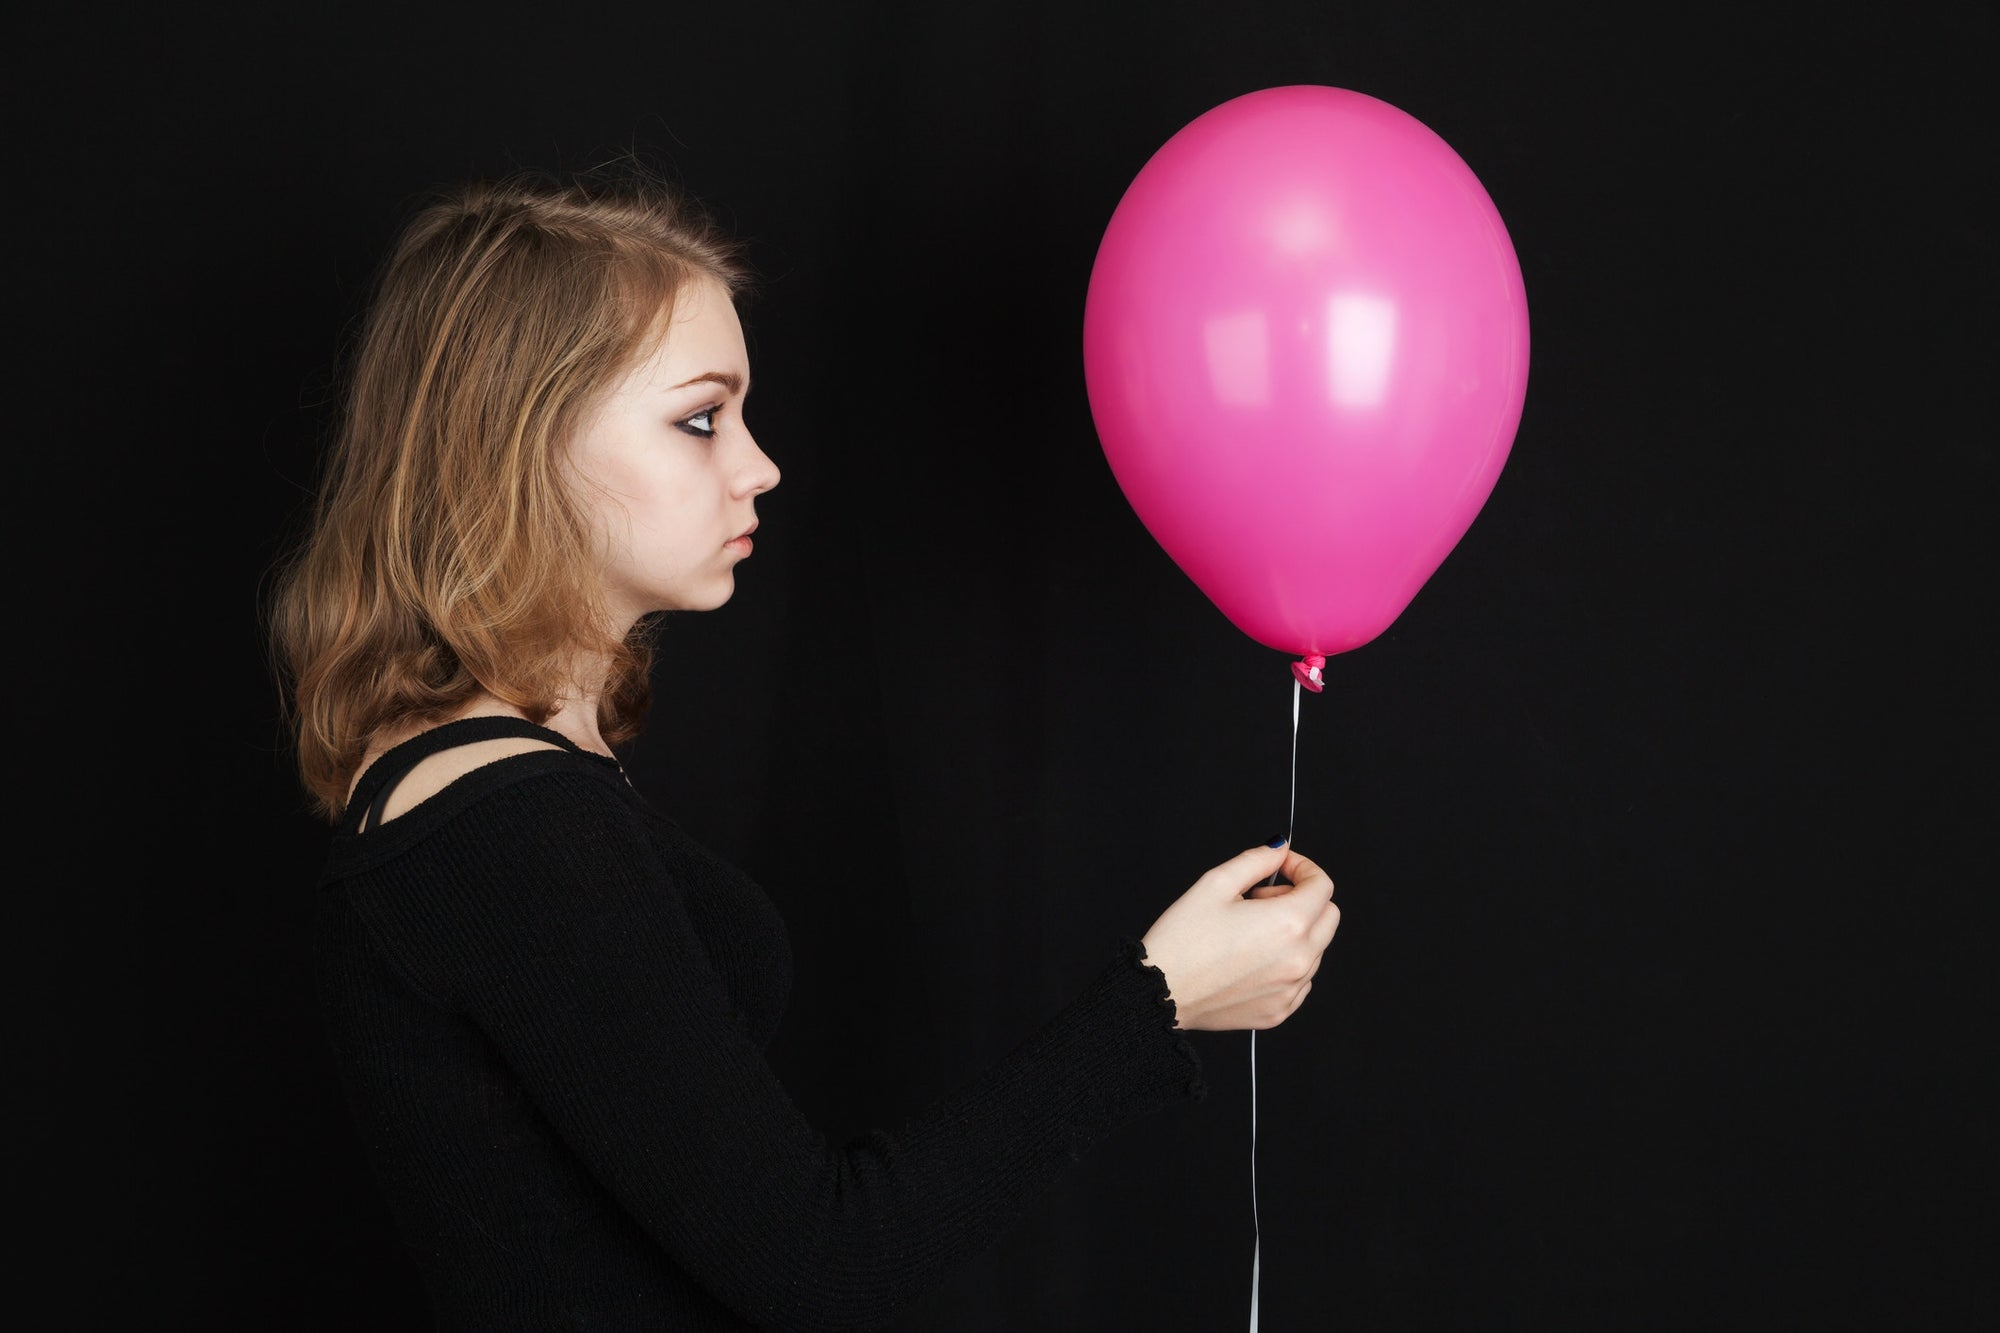 Young woman holding colorful pink balloon